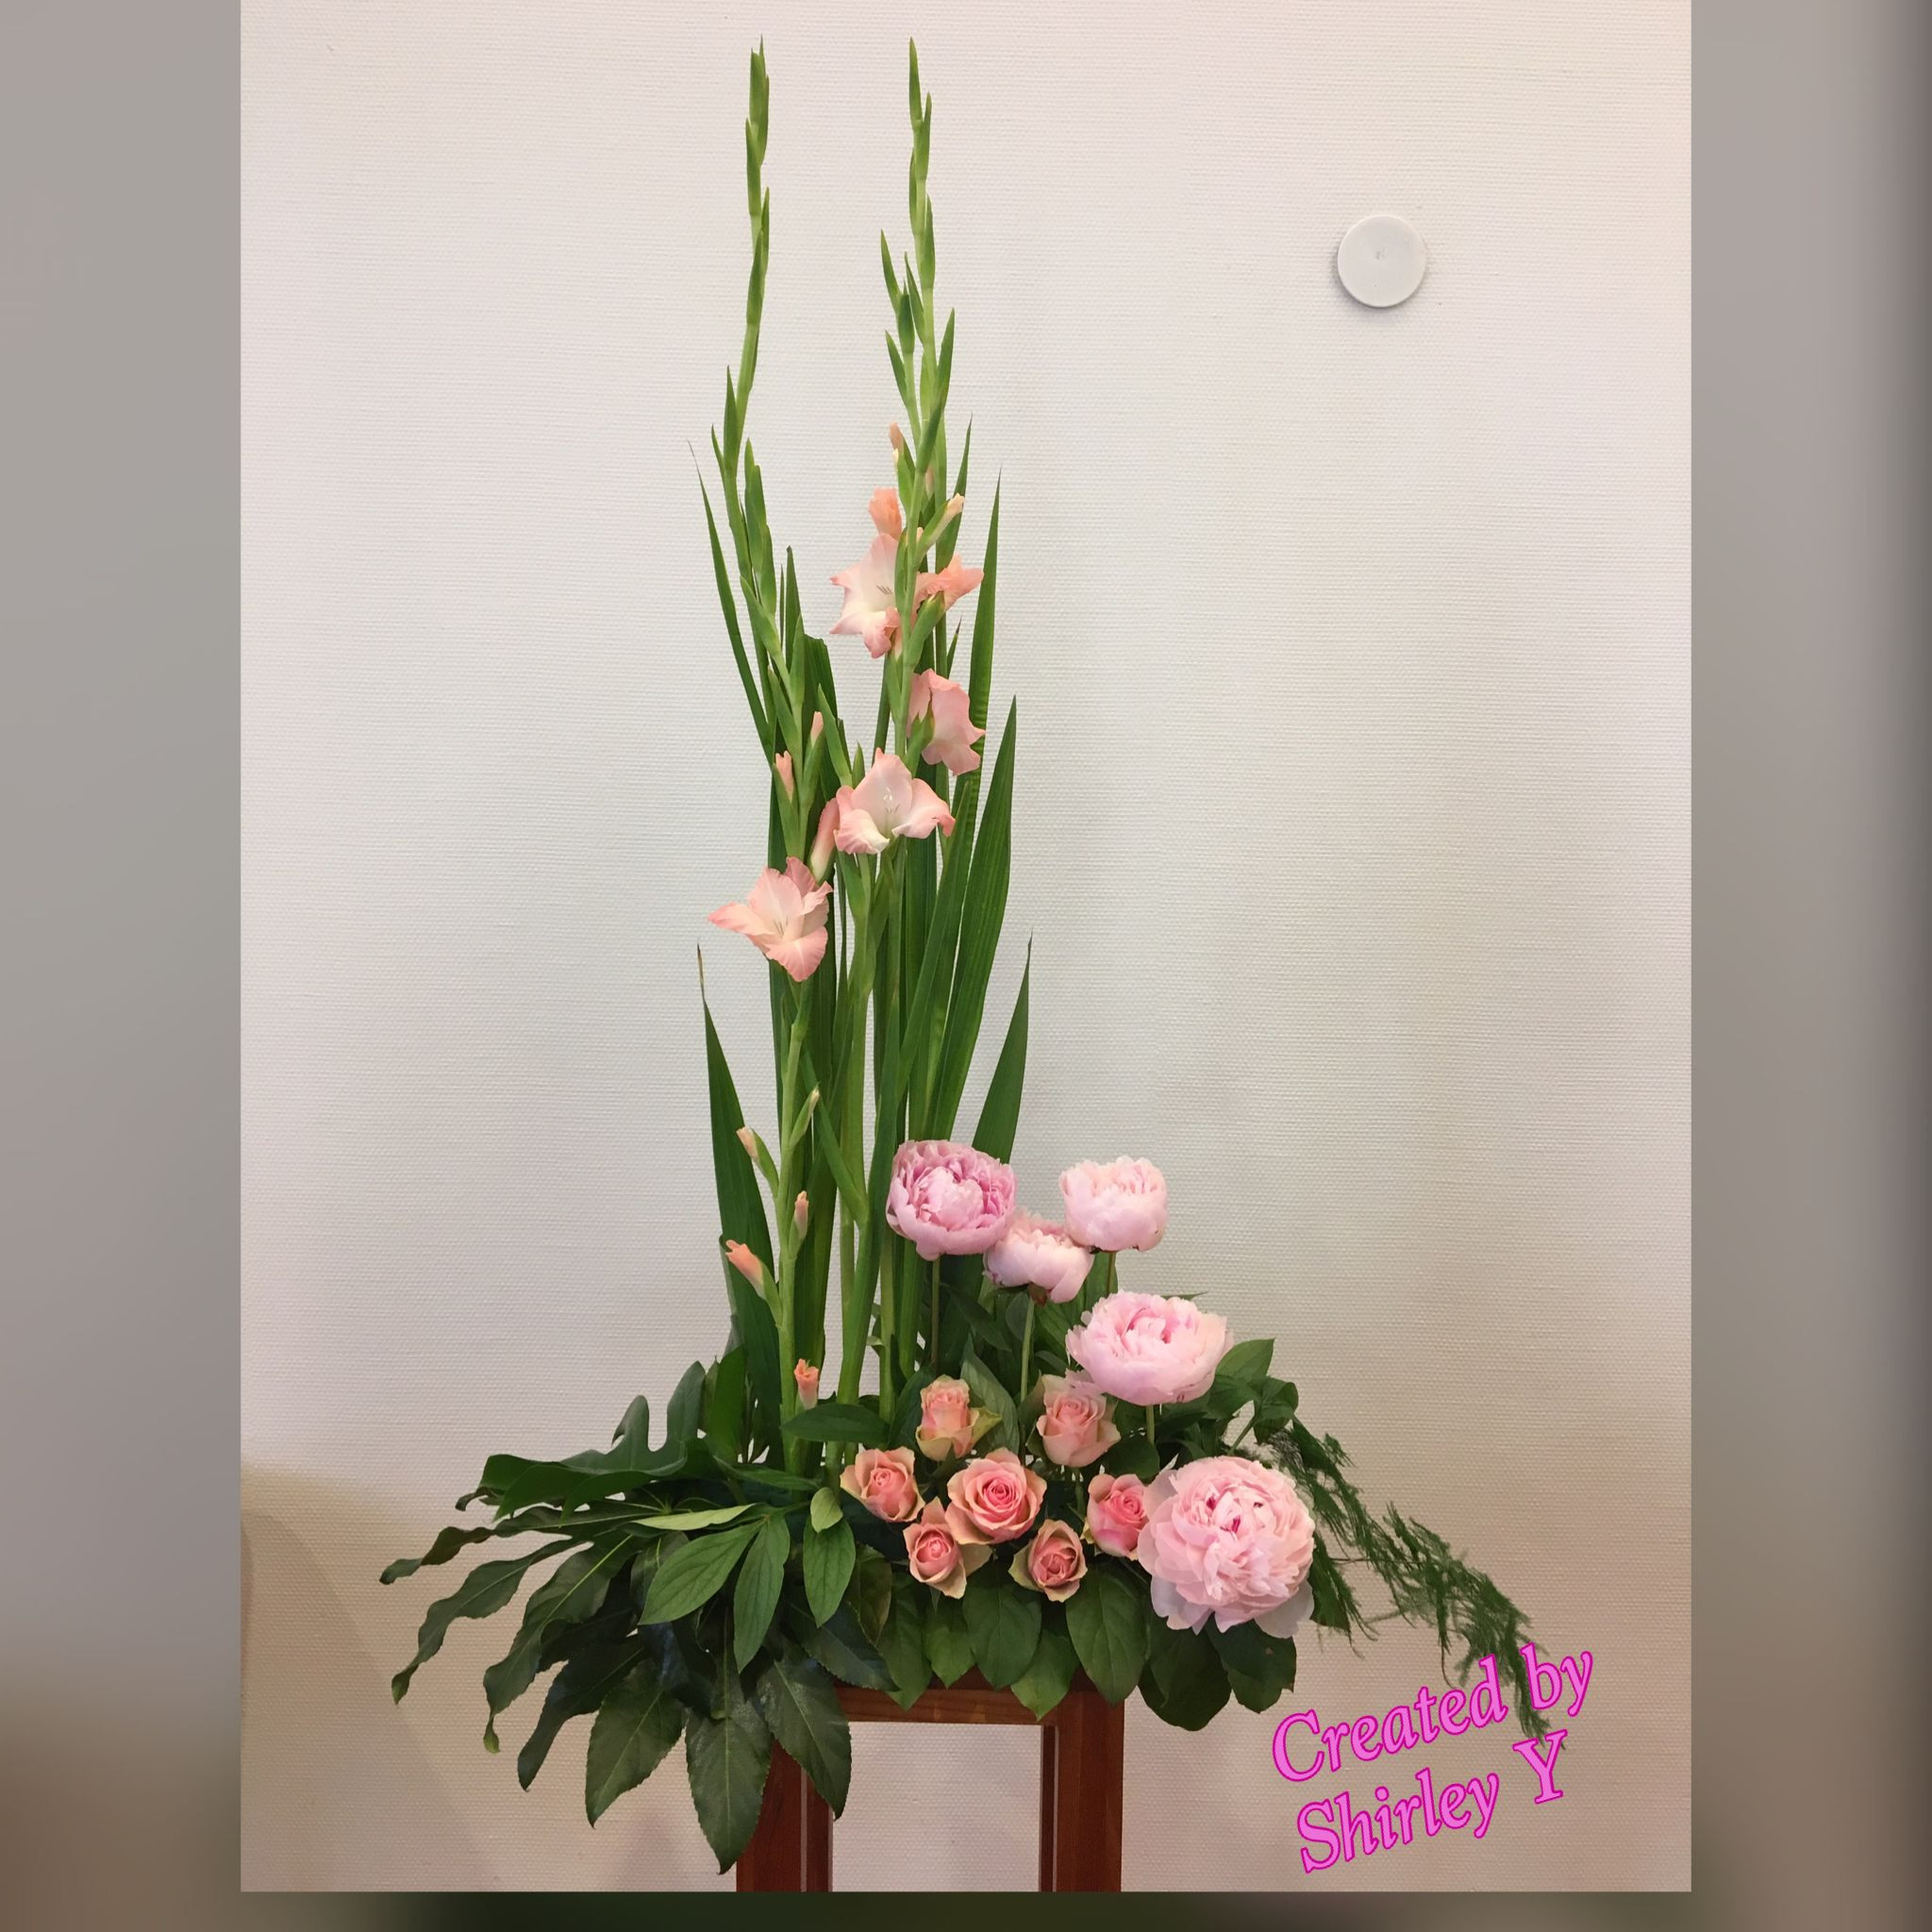 church flower vases of pin by maria magdalena on rangkaian bunga pinterest flowers with visit